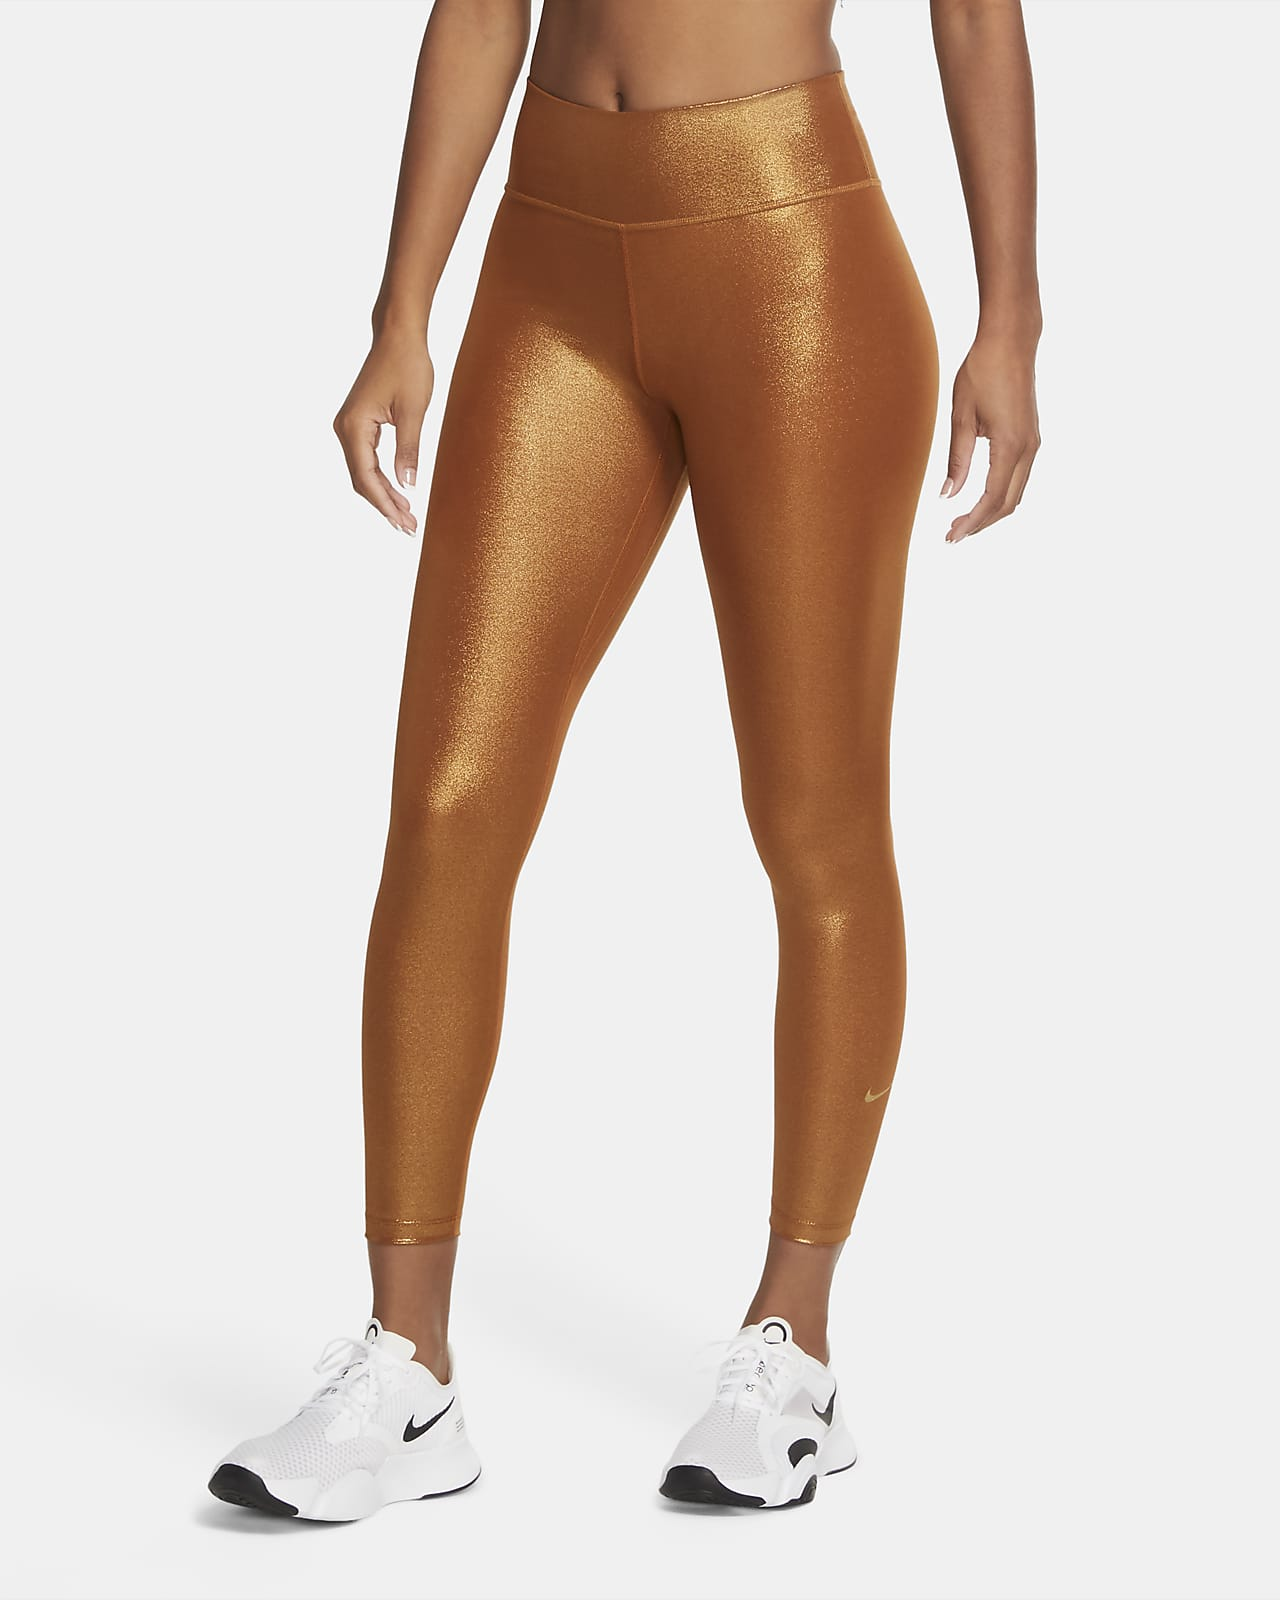 Nike One Icon Clash-7/8-tights med glitter til kvinder